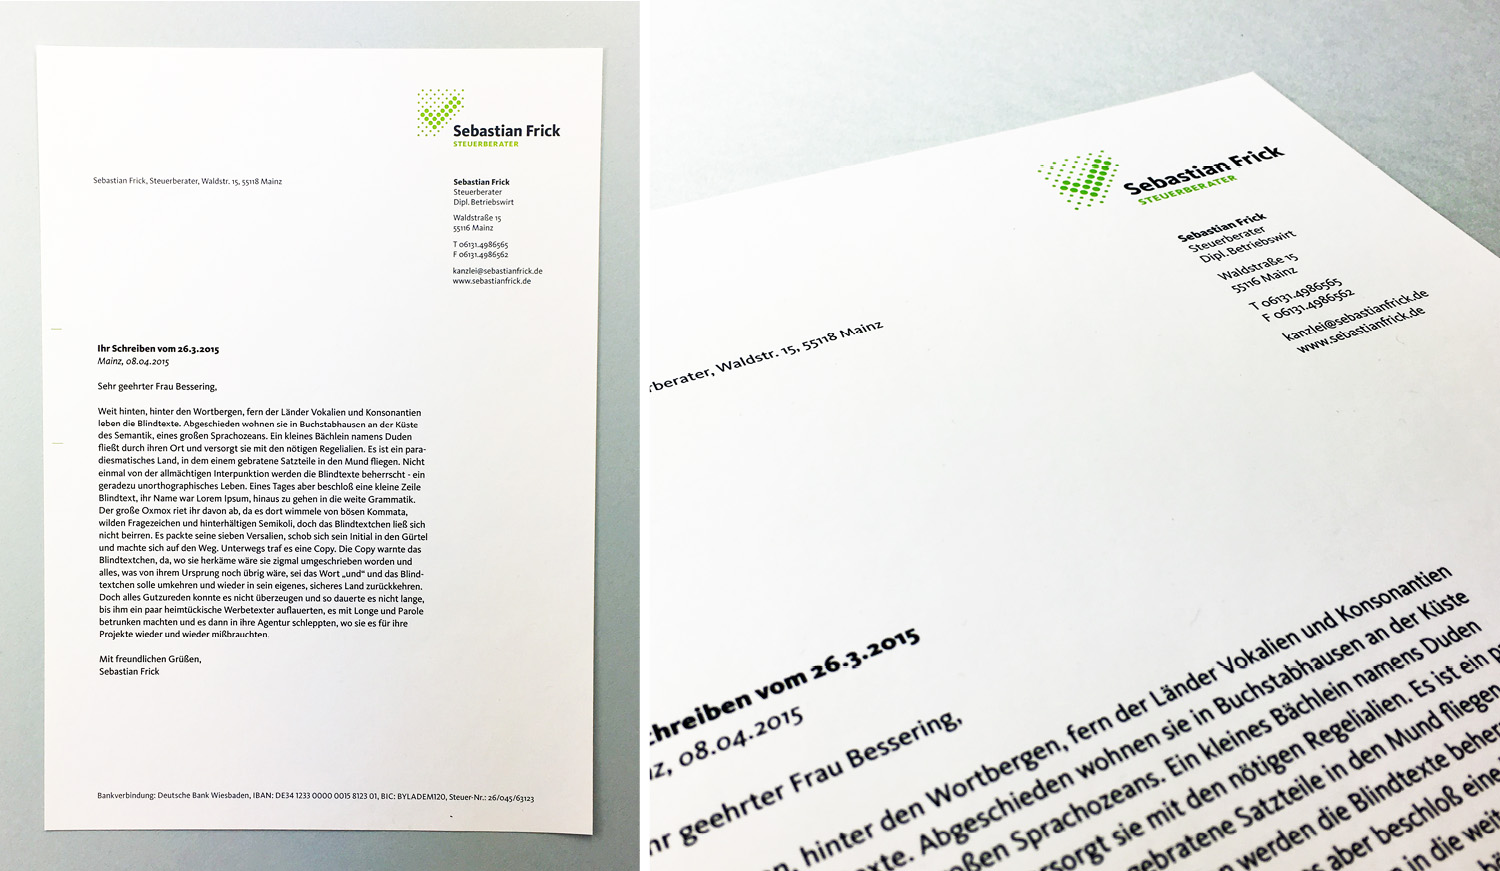 Sebastian Frick logo and corporate design by Louisa Fröhlich